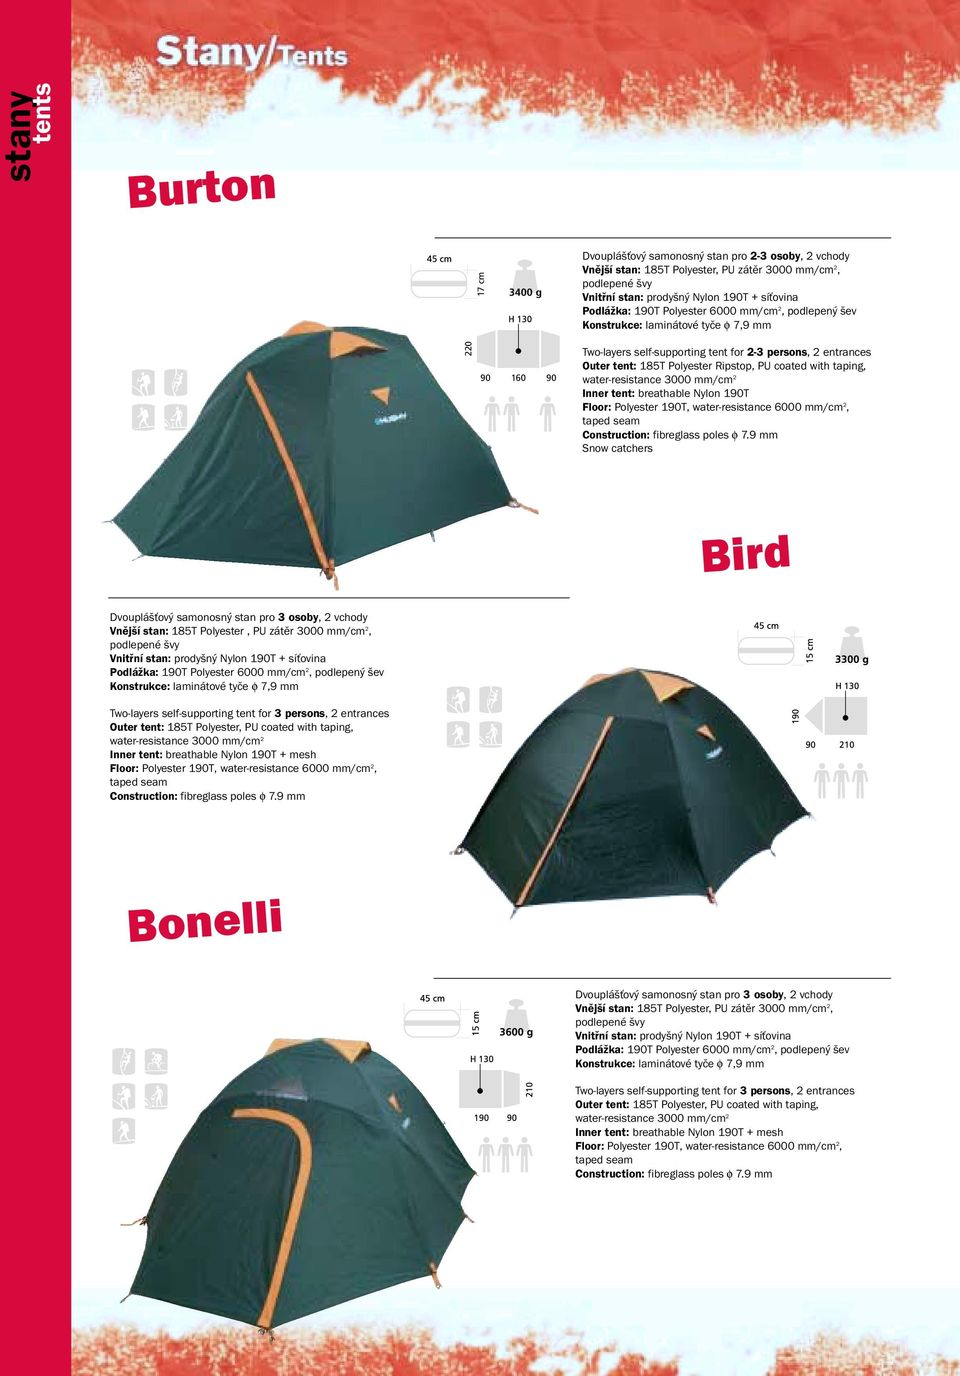 stan: 185T Polyester, PU zátěr 3000 mm/cm 2, Podlážka: 1T Polyester 6000 mm/cm 2, Two-layers self-supporting tent for 3 persons, 6000 mm/cm 2,